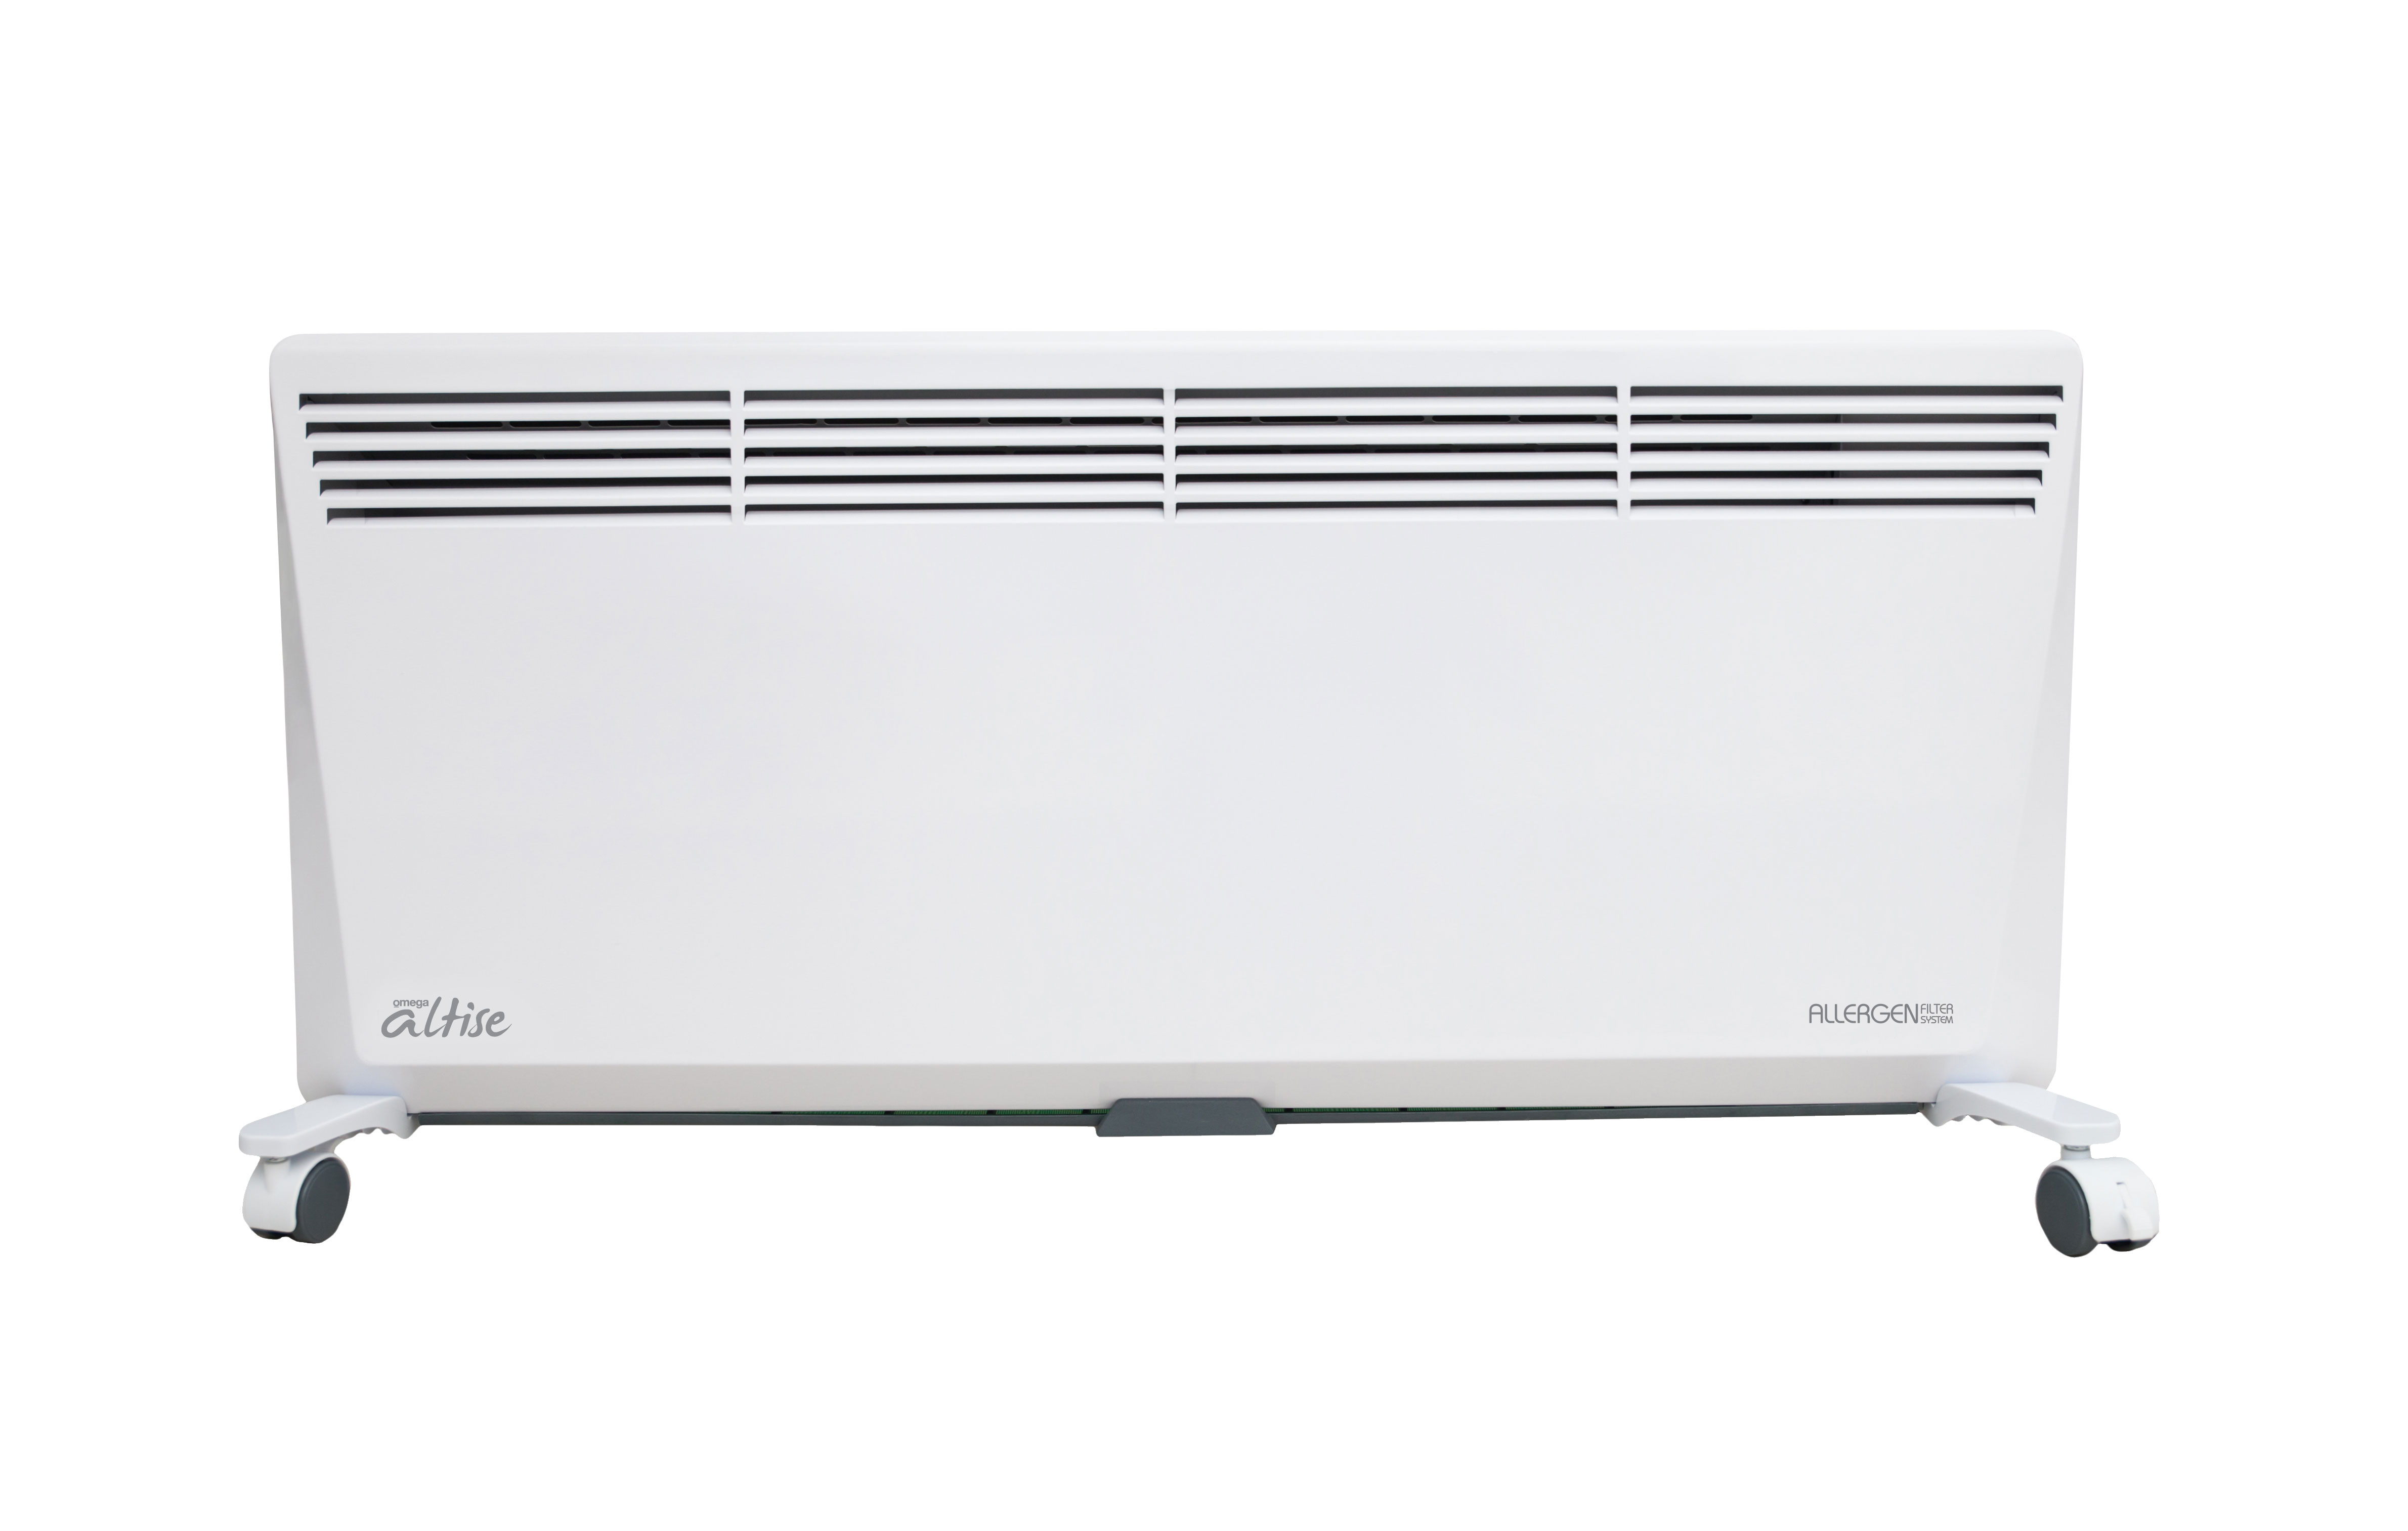 Omega Altise Product Panel Heater - With Filter 2400W  (ANPE2400W)